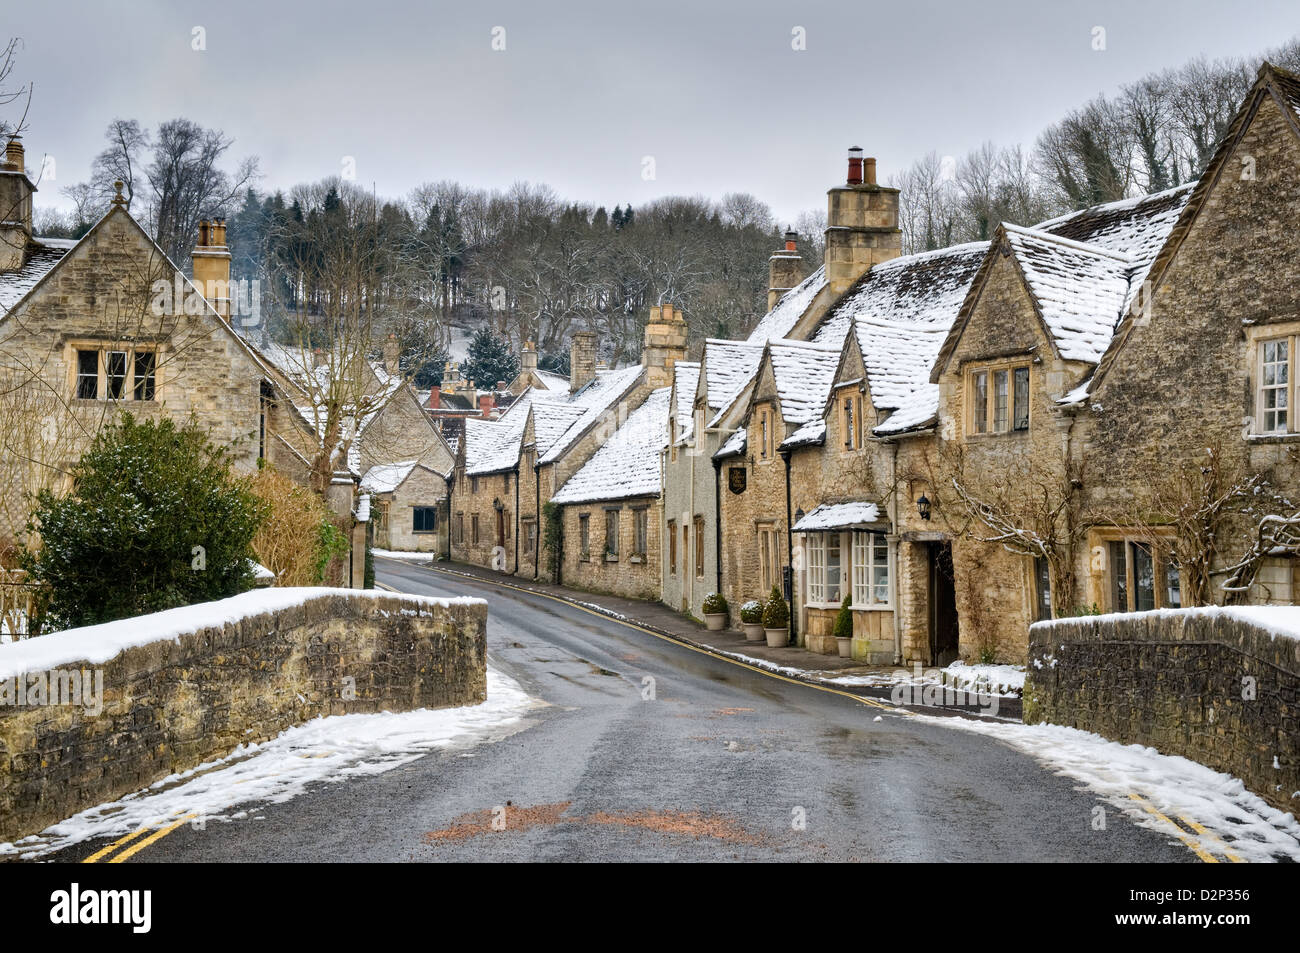 snowy english village wallpaper - photo #37